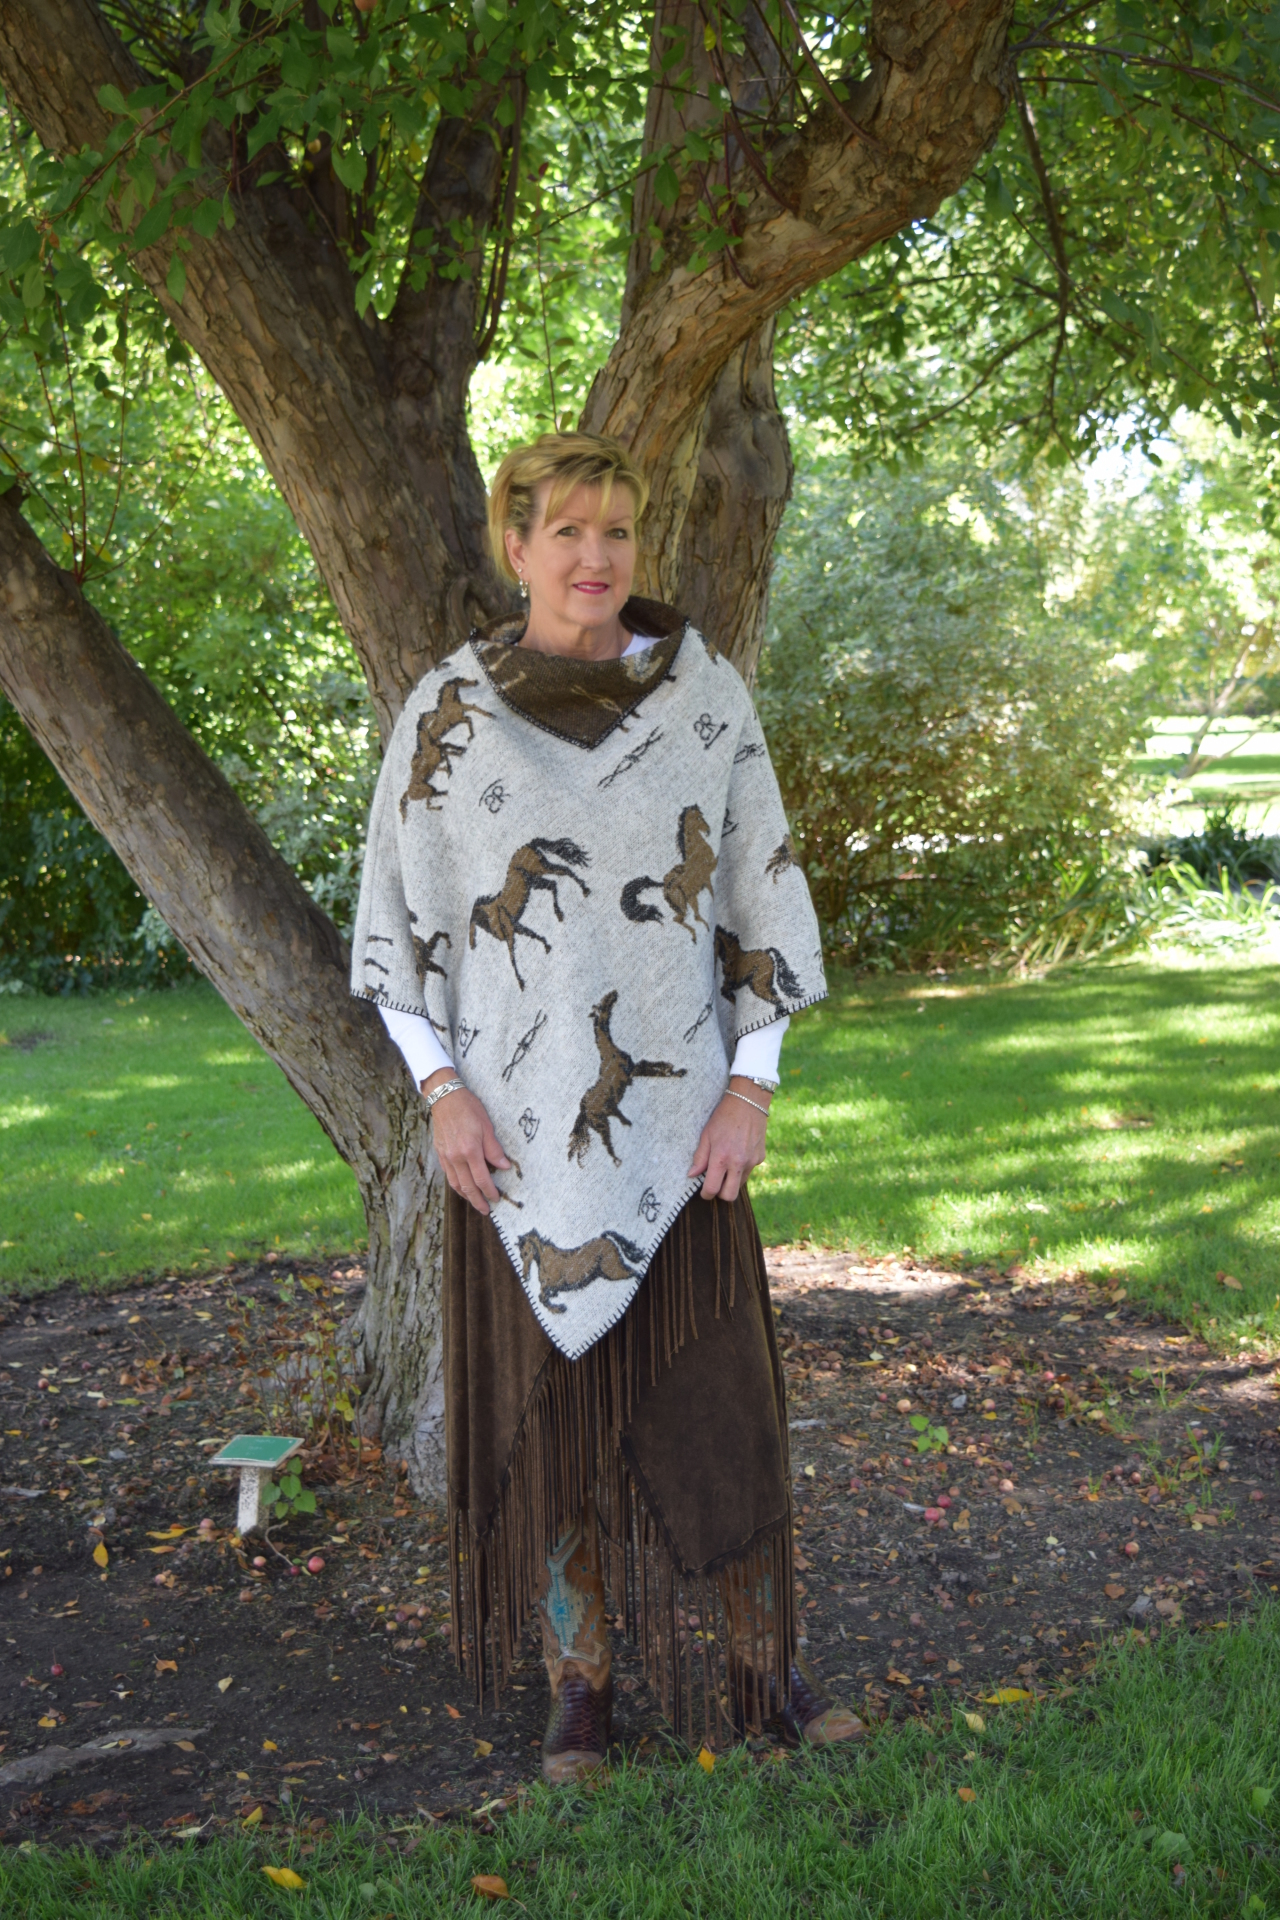 228HBO - OATMEAL HORSE BRANDS KERCHIEF PONCHO - O/S - $99.95